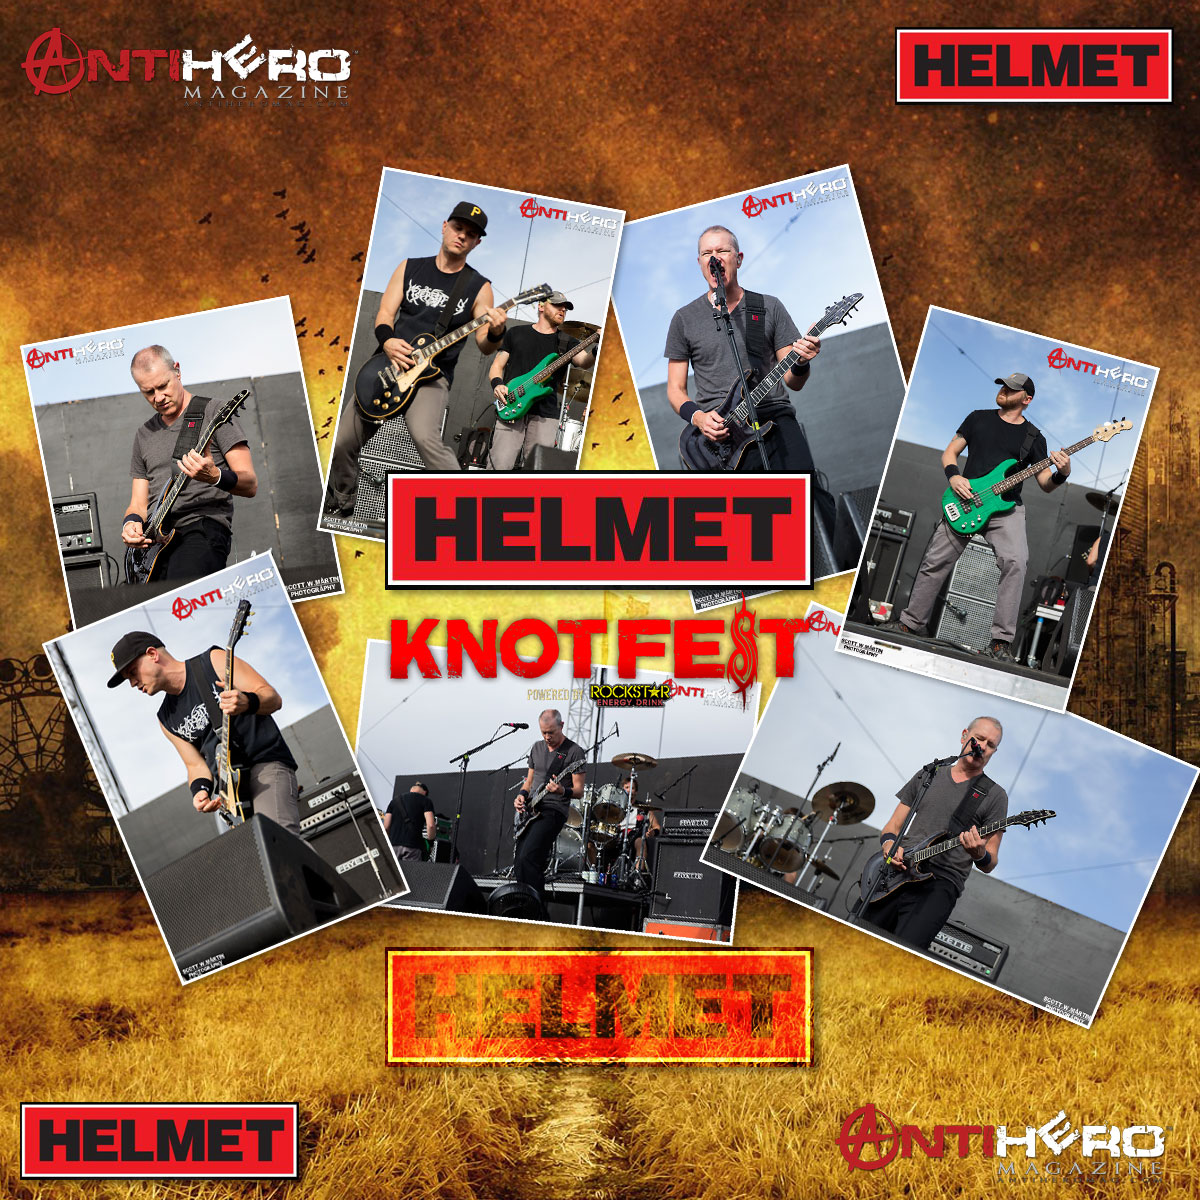 knotfest-helmet-cover